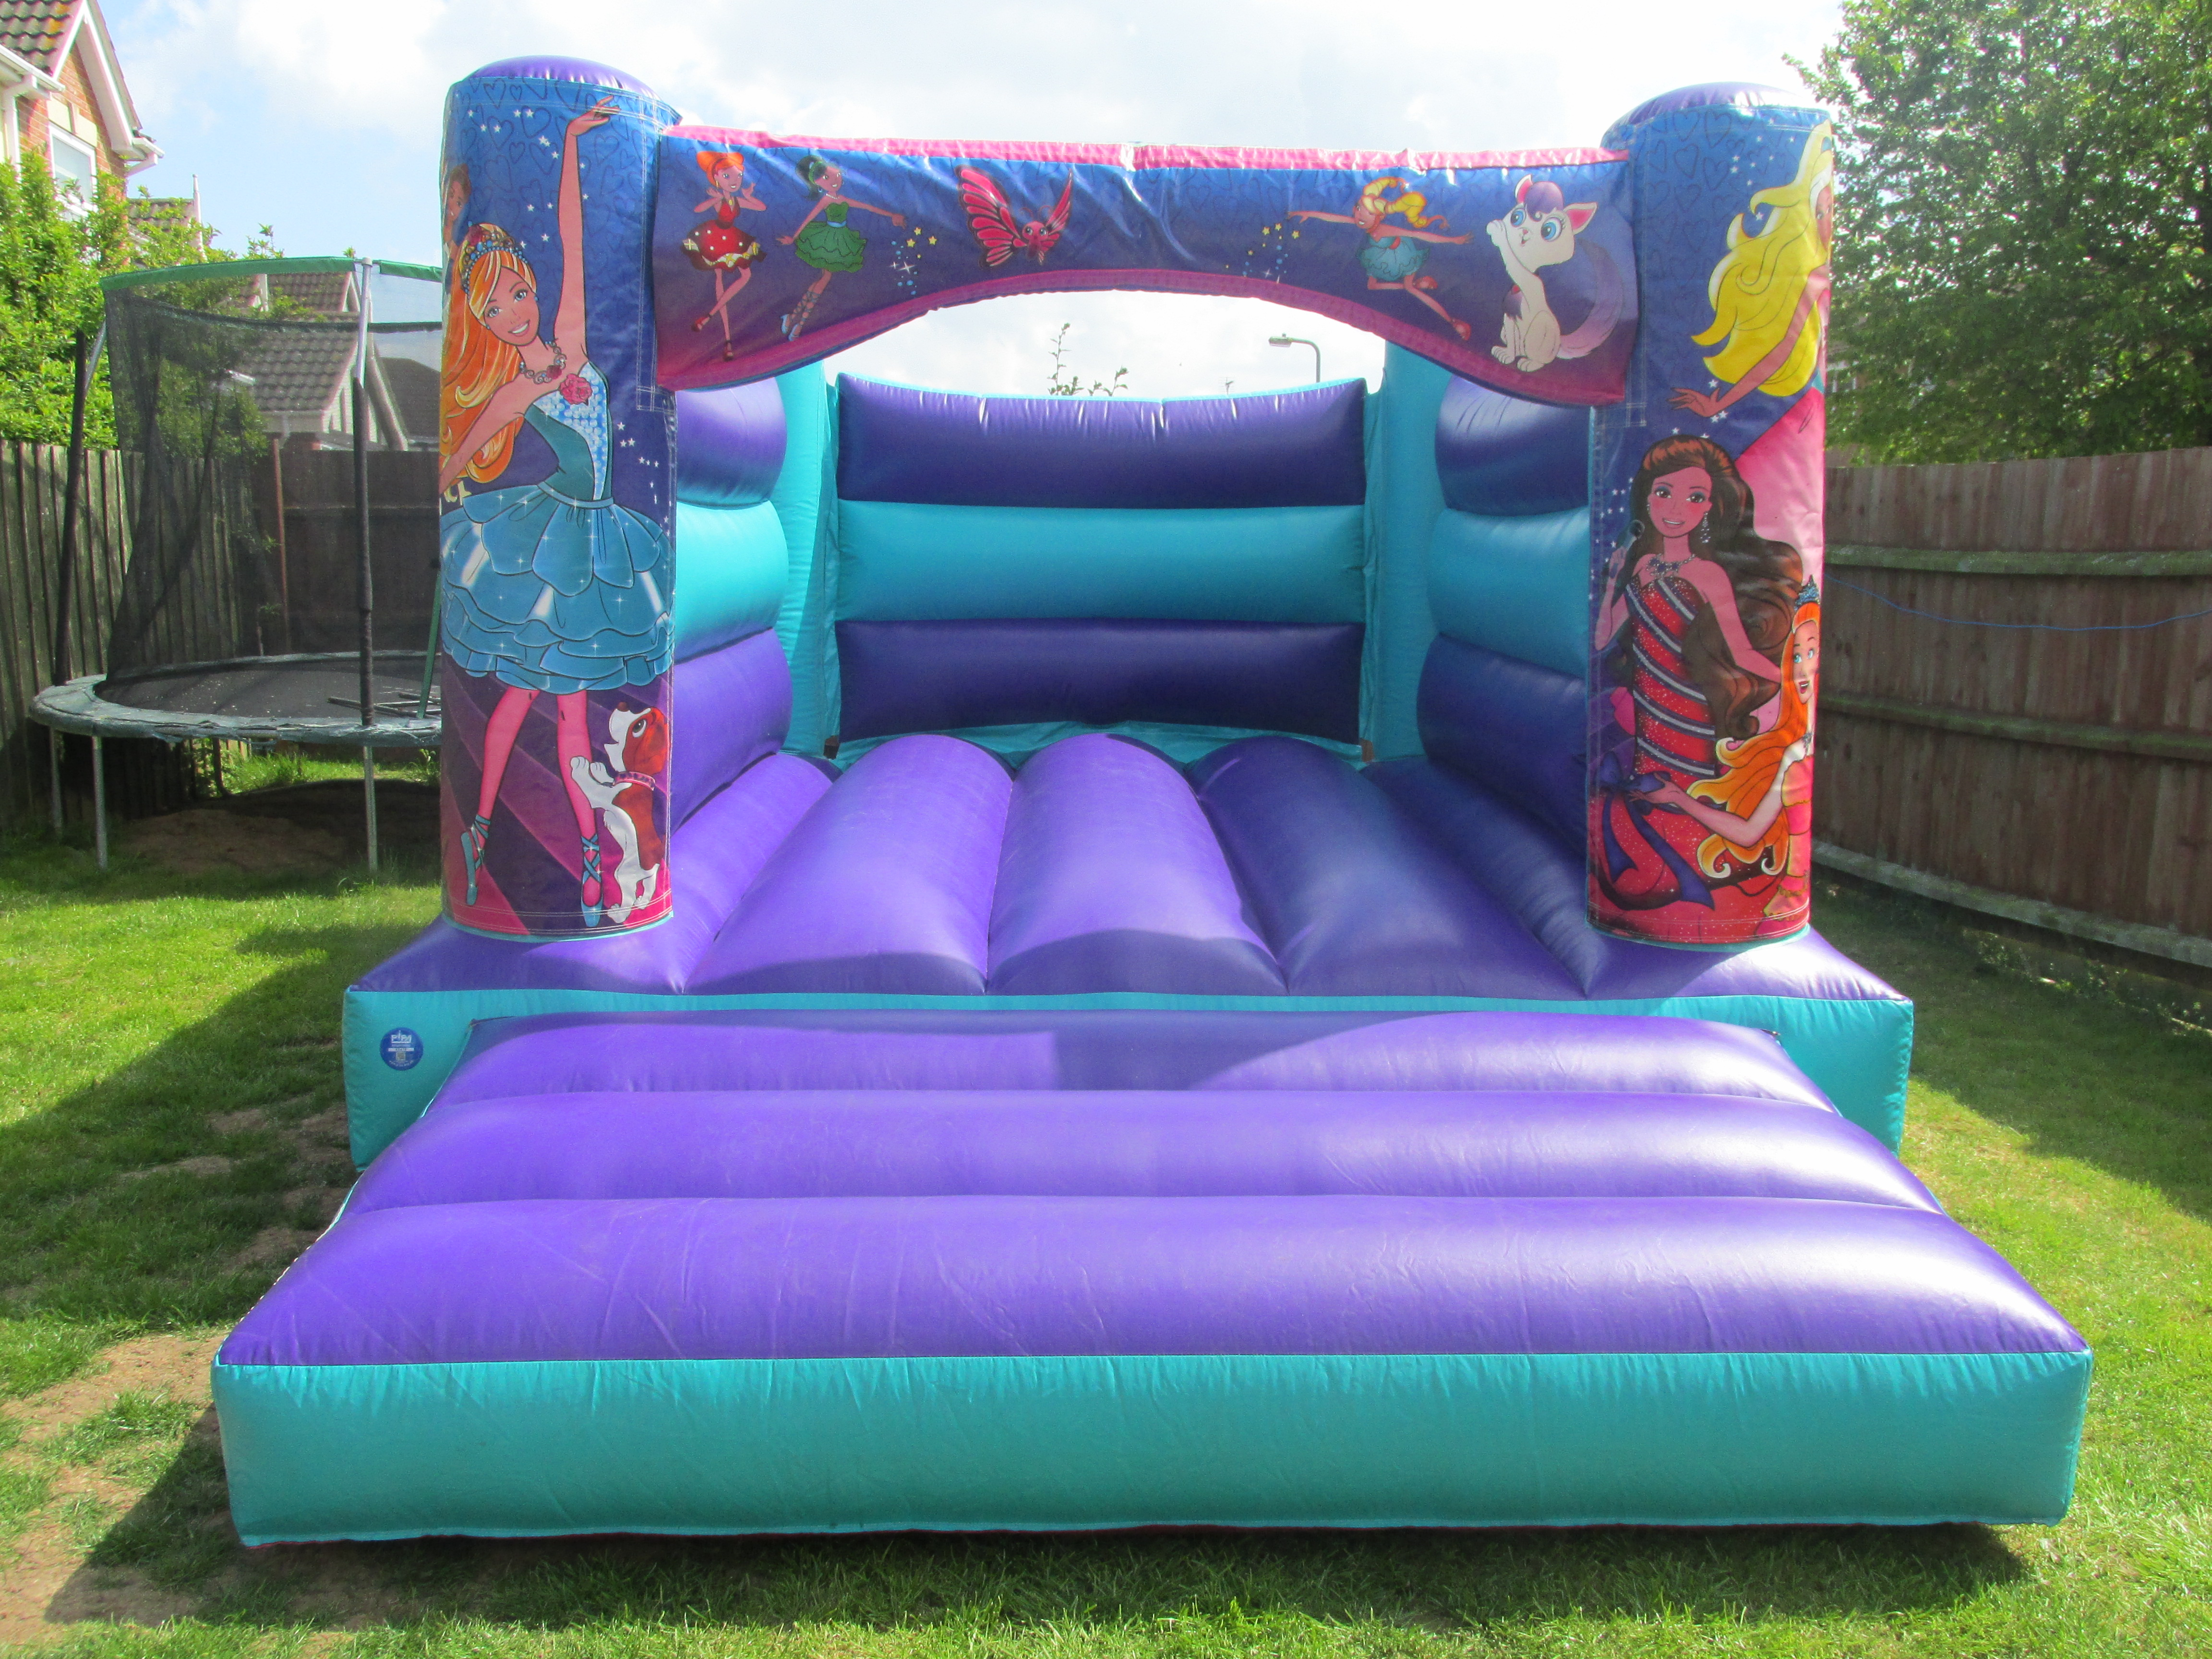 Beautiful Barbie Themed Bouncy Castle Hire In Bourne, Spalding And Peterborough